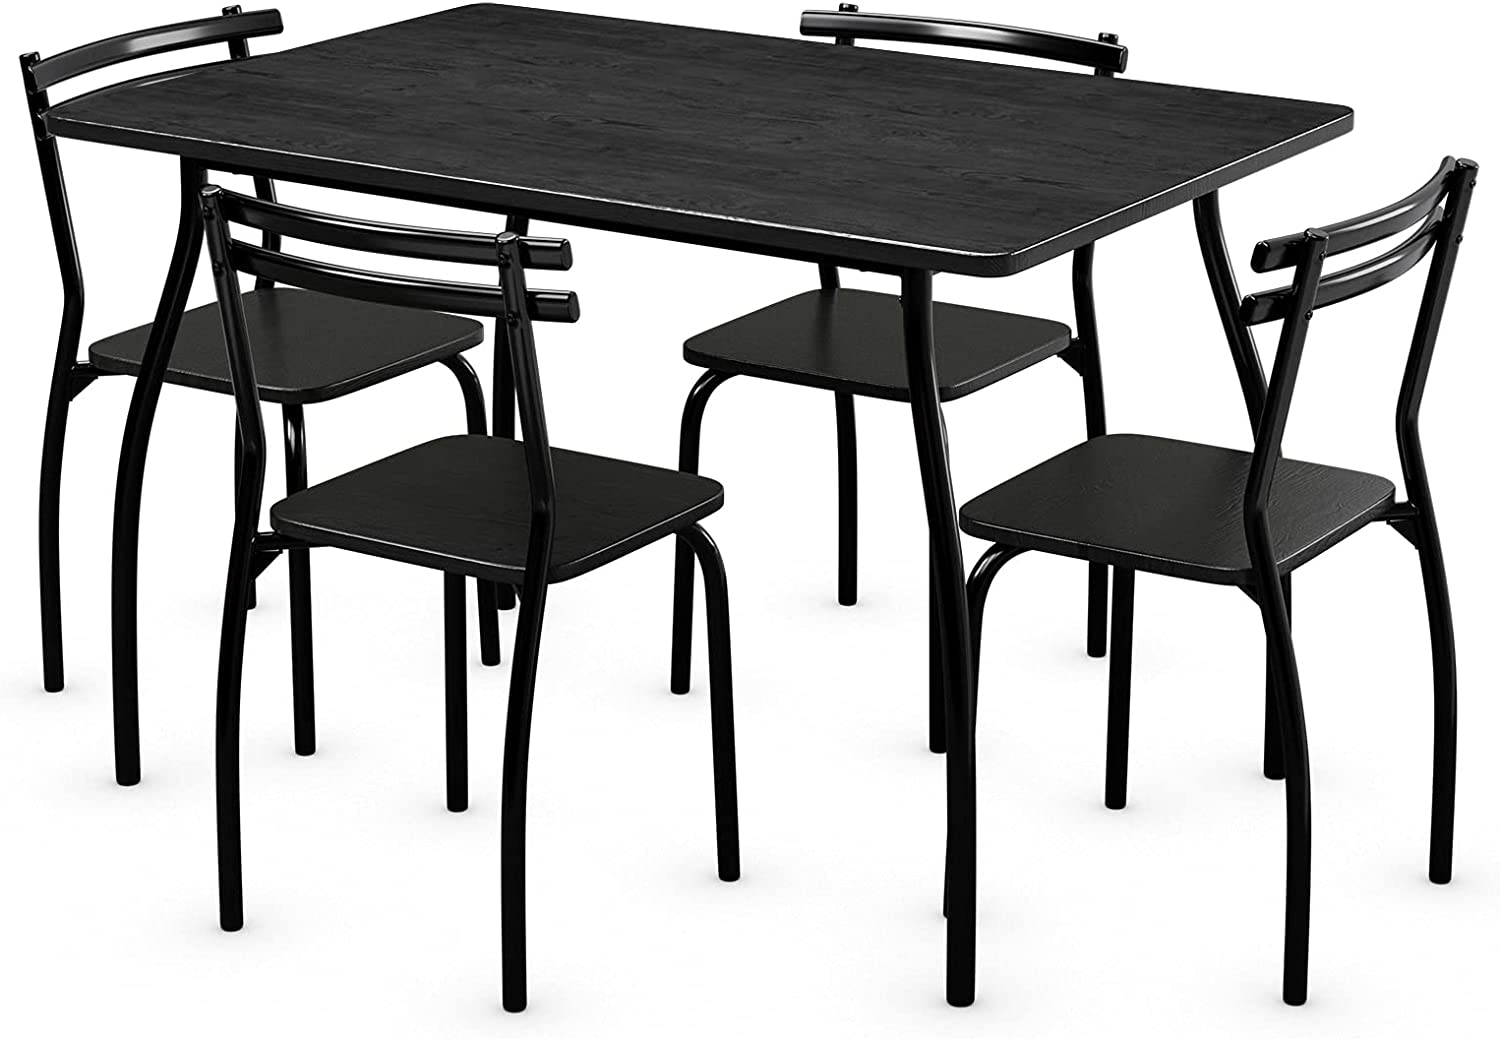 5 Piece Kitchen Dining Room Table Set, Small Black Dining Table And 4 Chairs